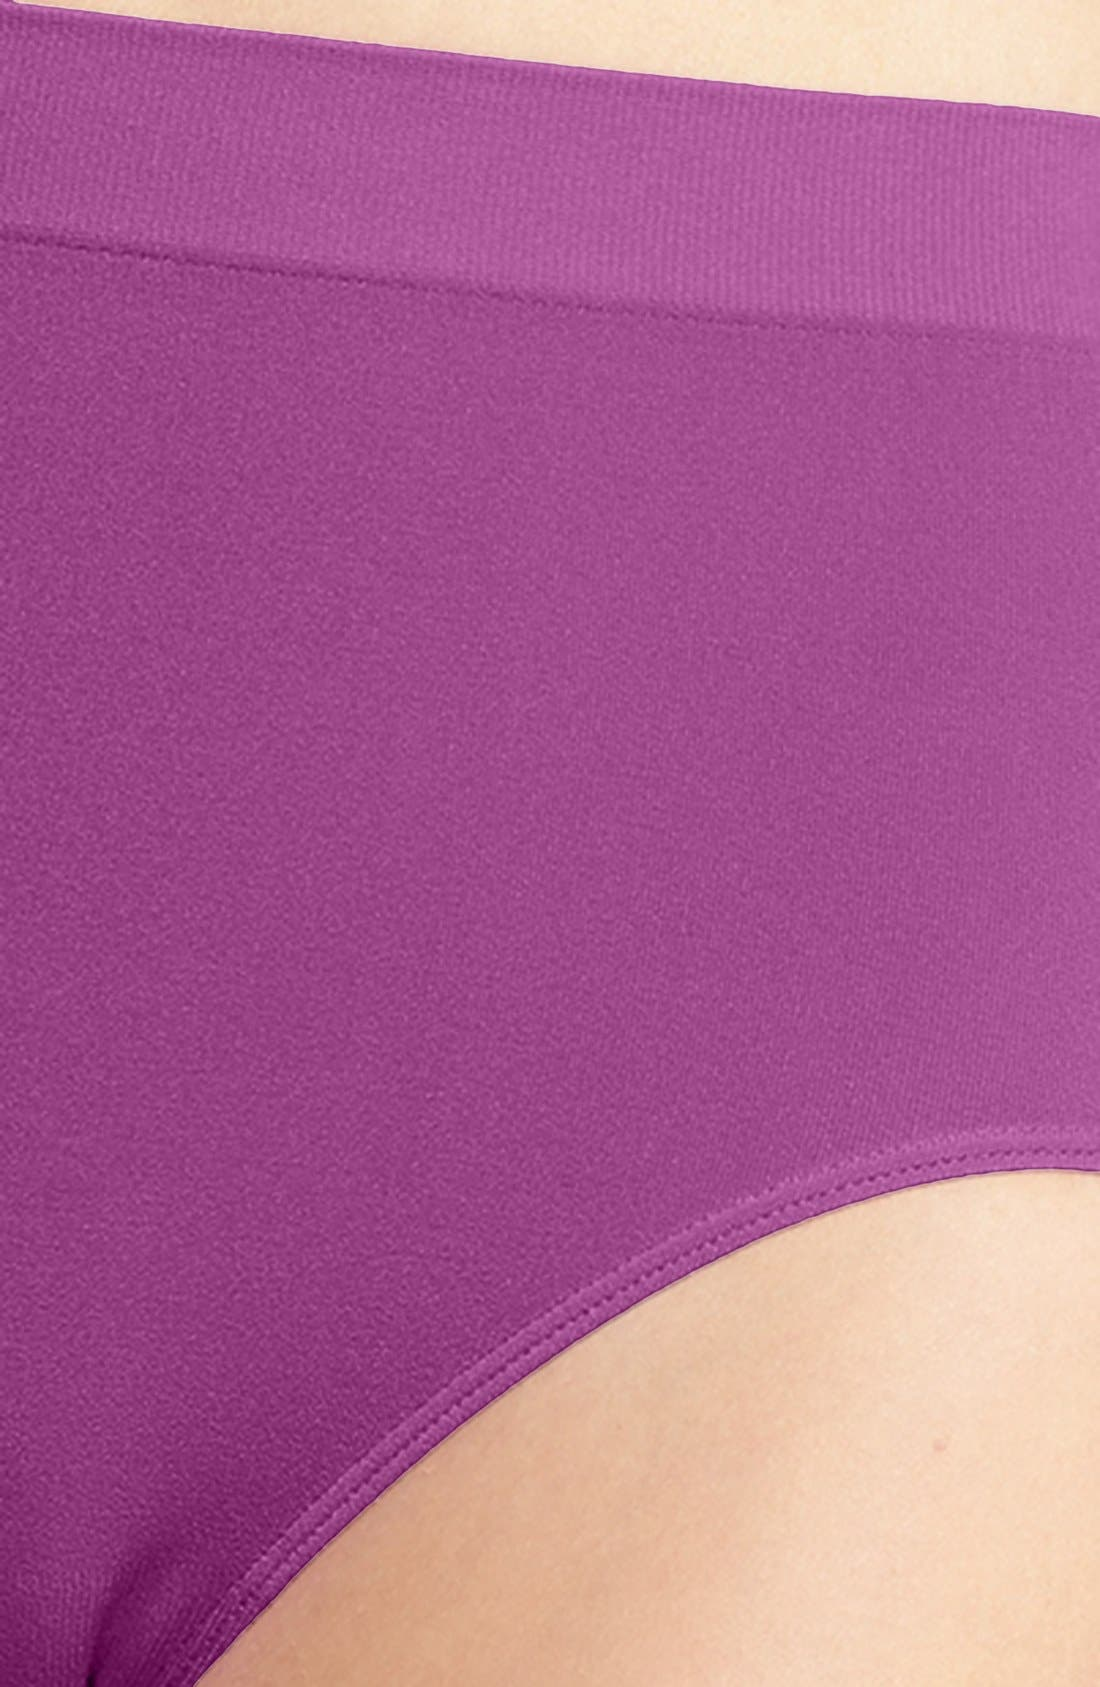 B Smooth Briefs,                             Alternate thumbnail 126, color,